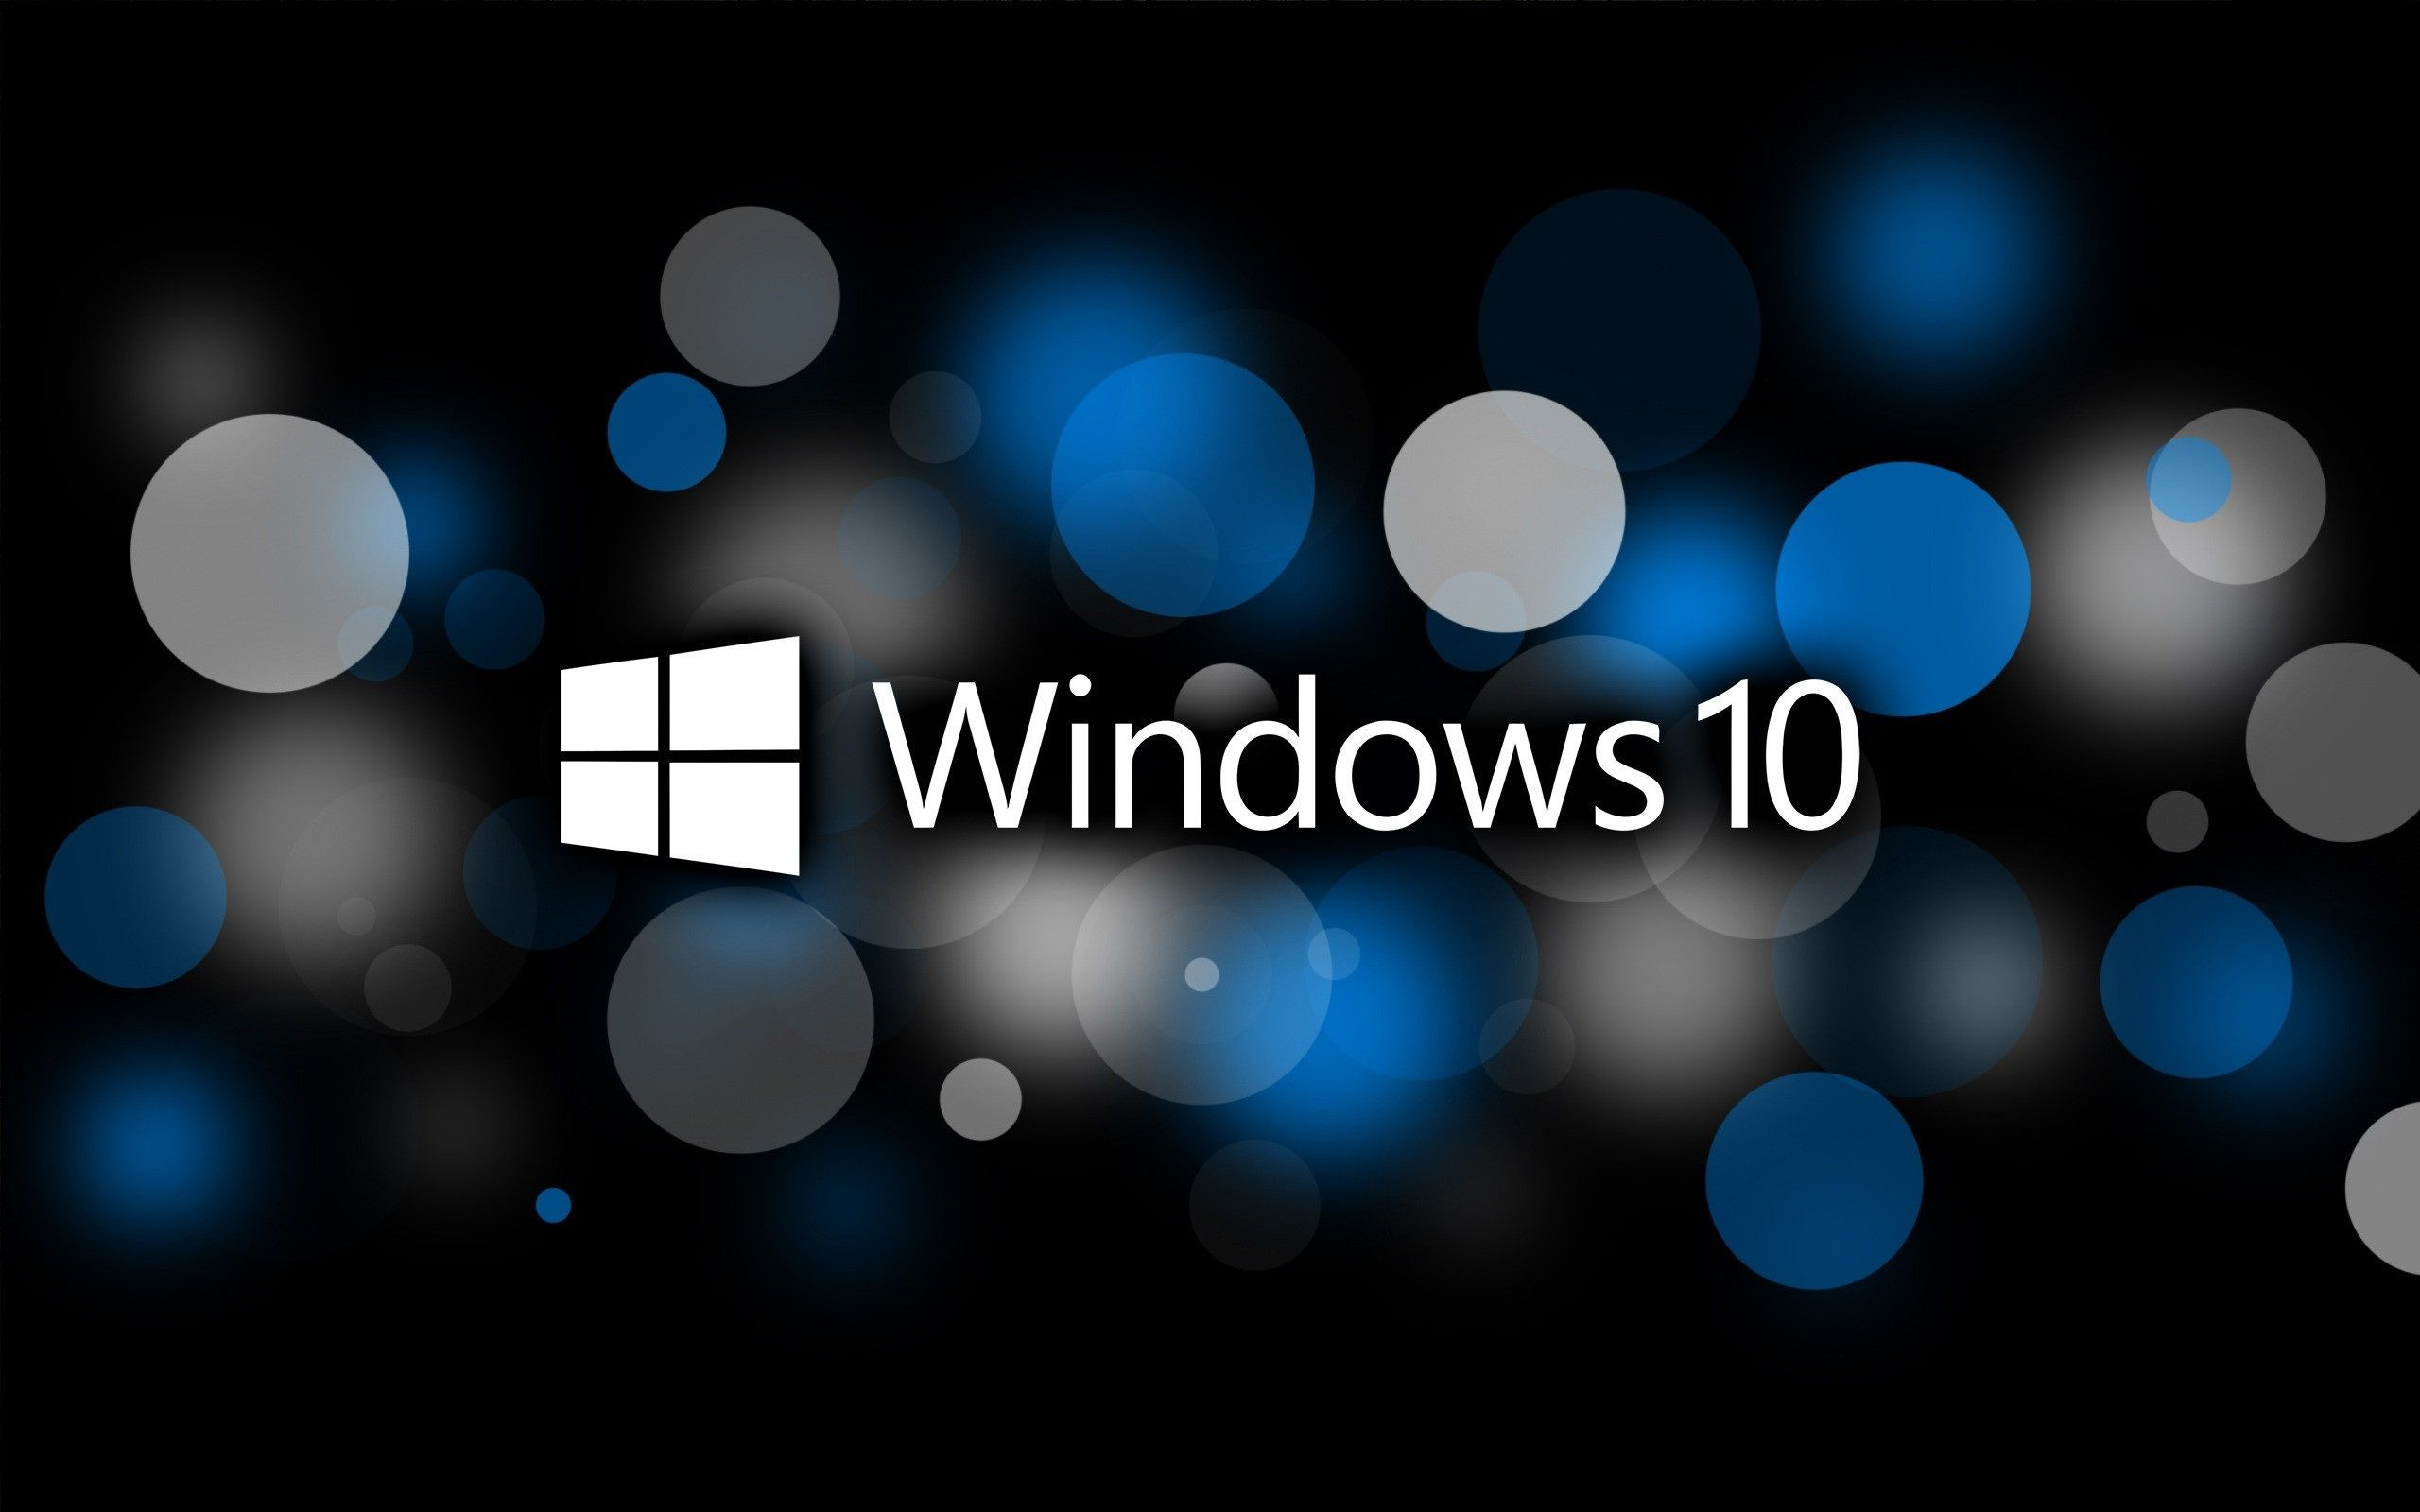 Windows 10 Hd Wallpaper 2 Wallpaper Windows 10 Windows 10 Desktop Windows